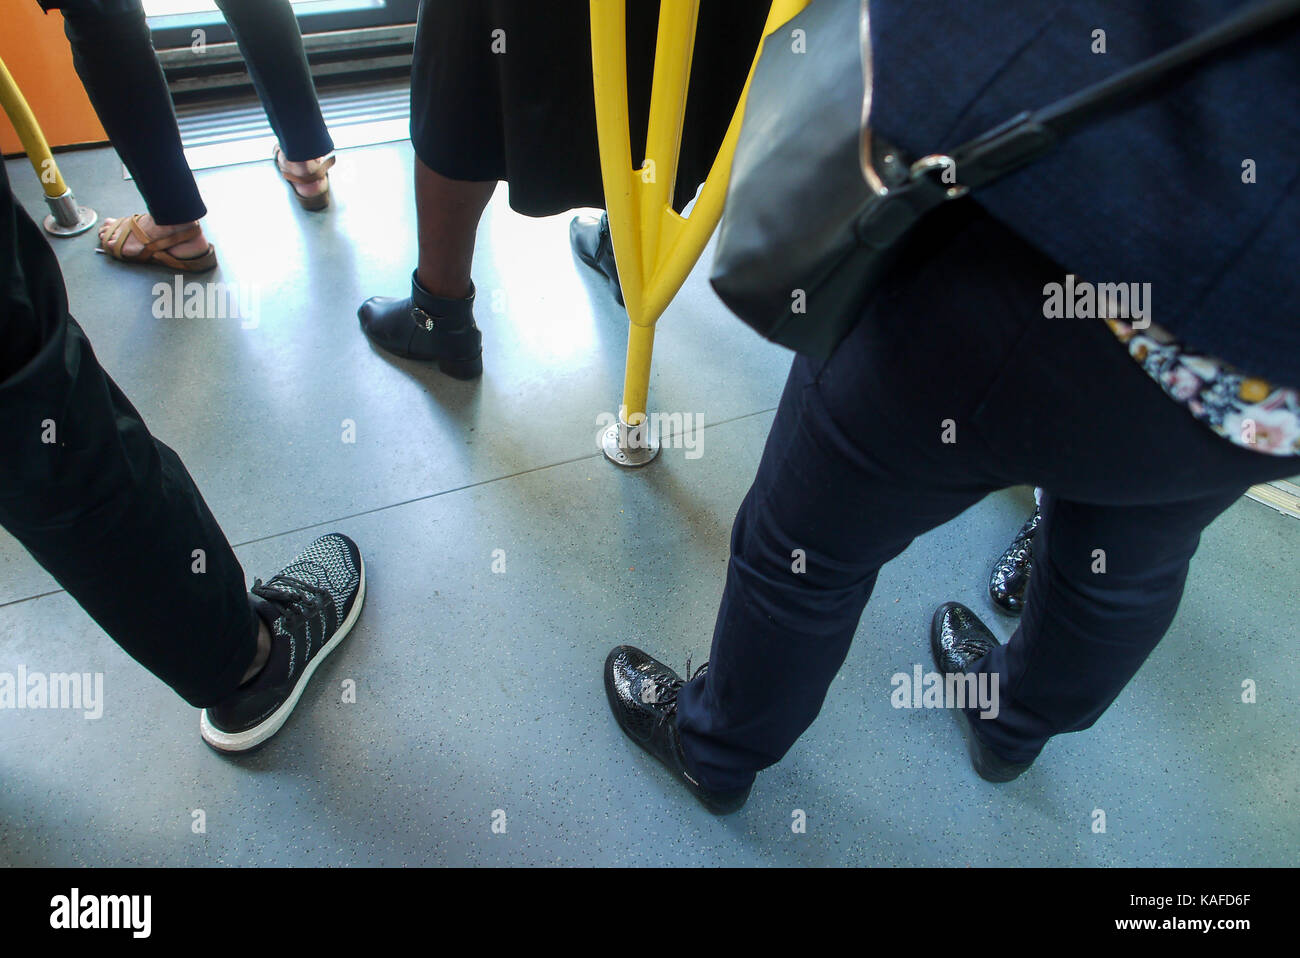 People stand in T3 tramway, Paris, france - Stock Image